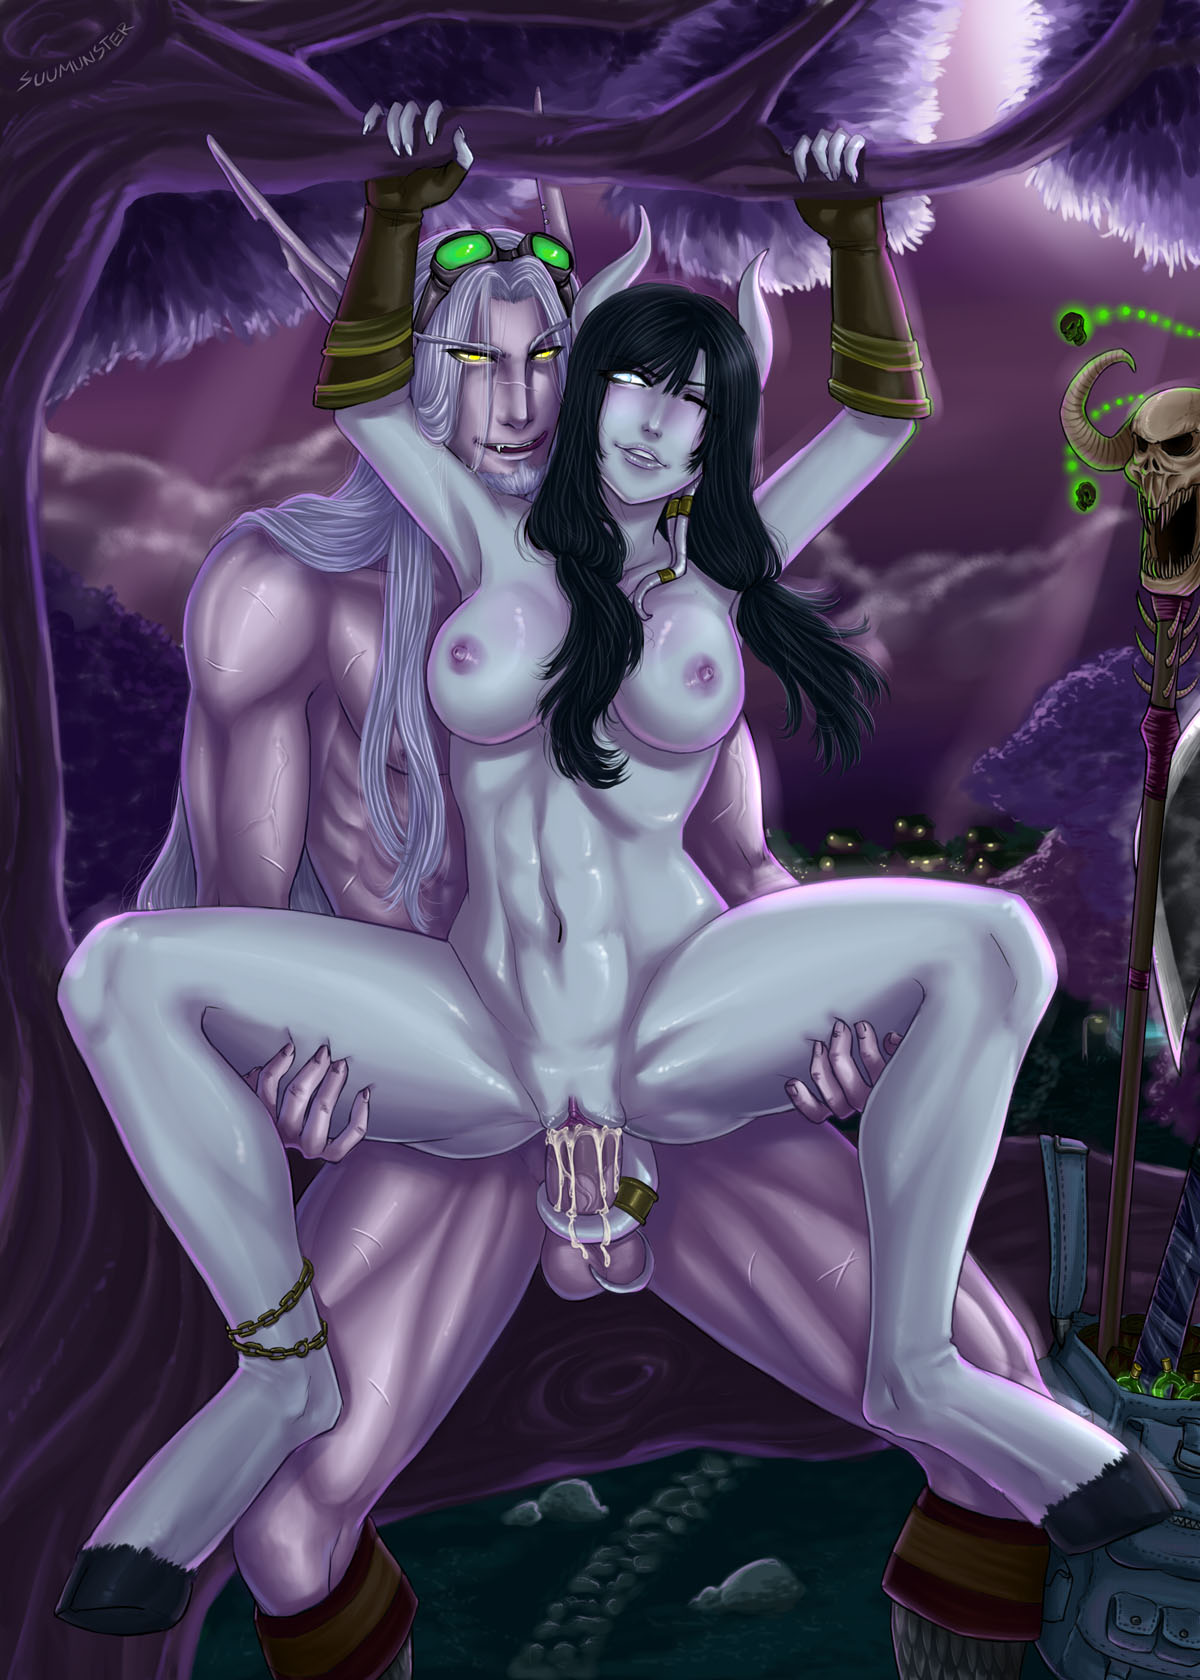 Night elf photo porno sexy pictures